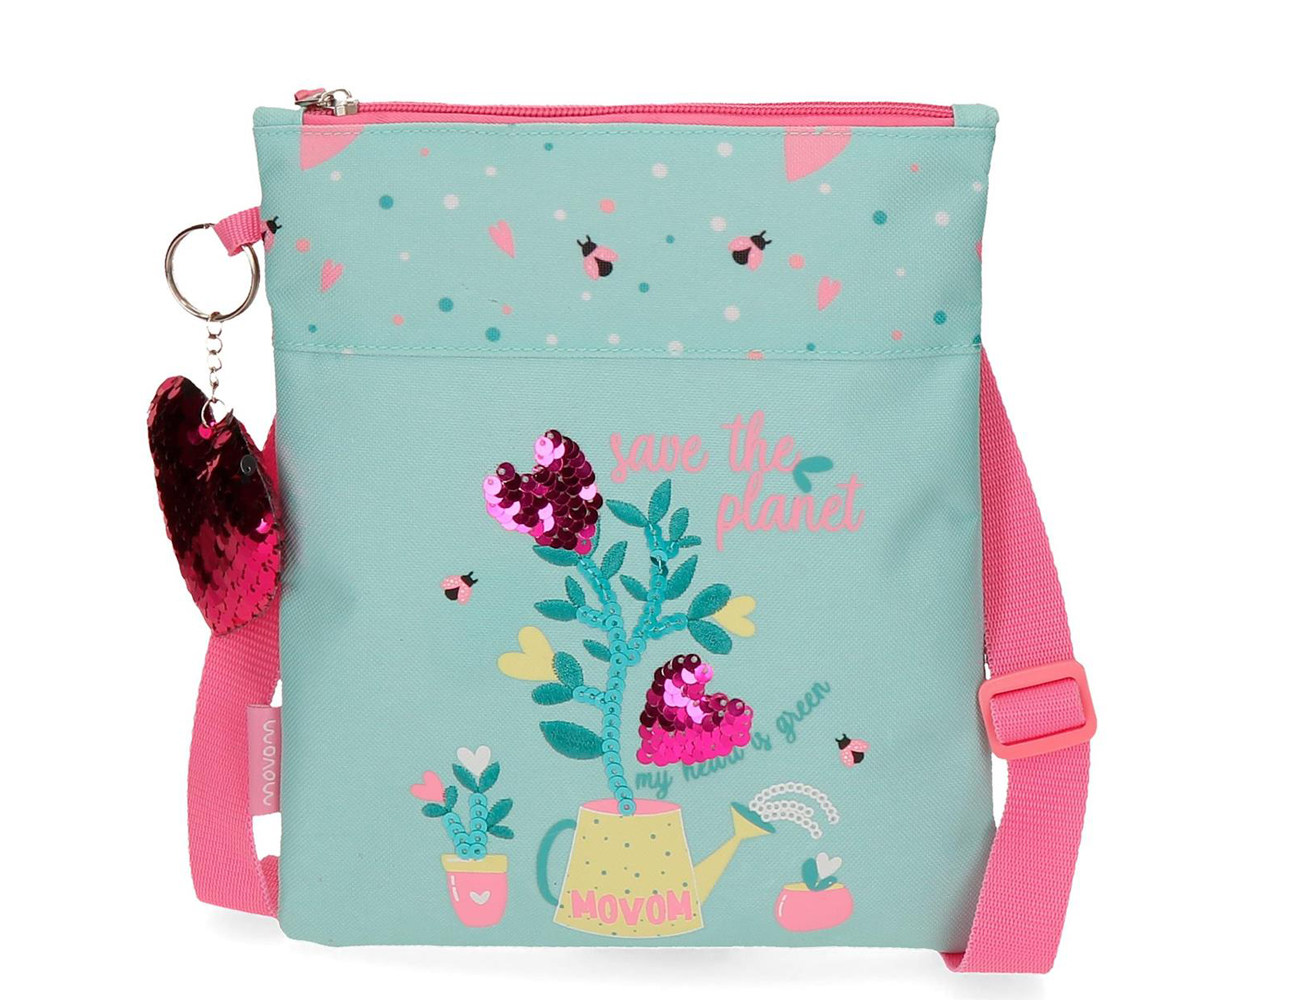 2025521 Bandolera Movom Flower Pot